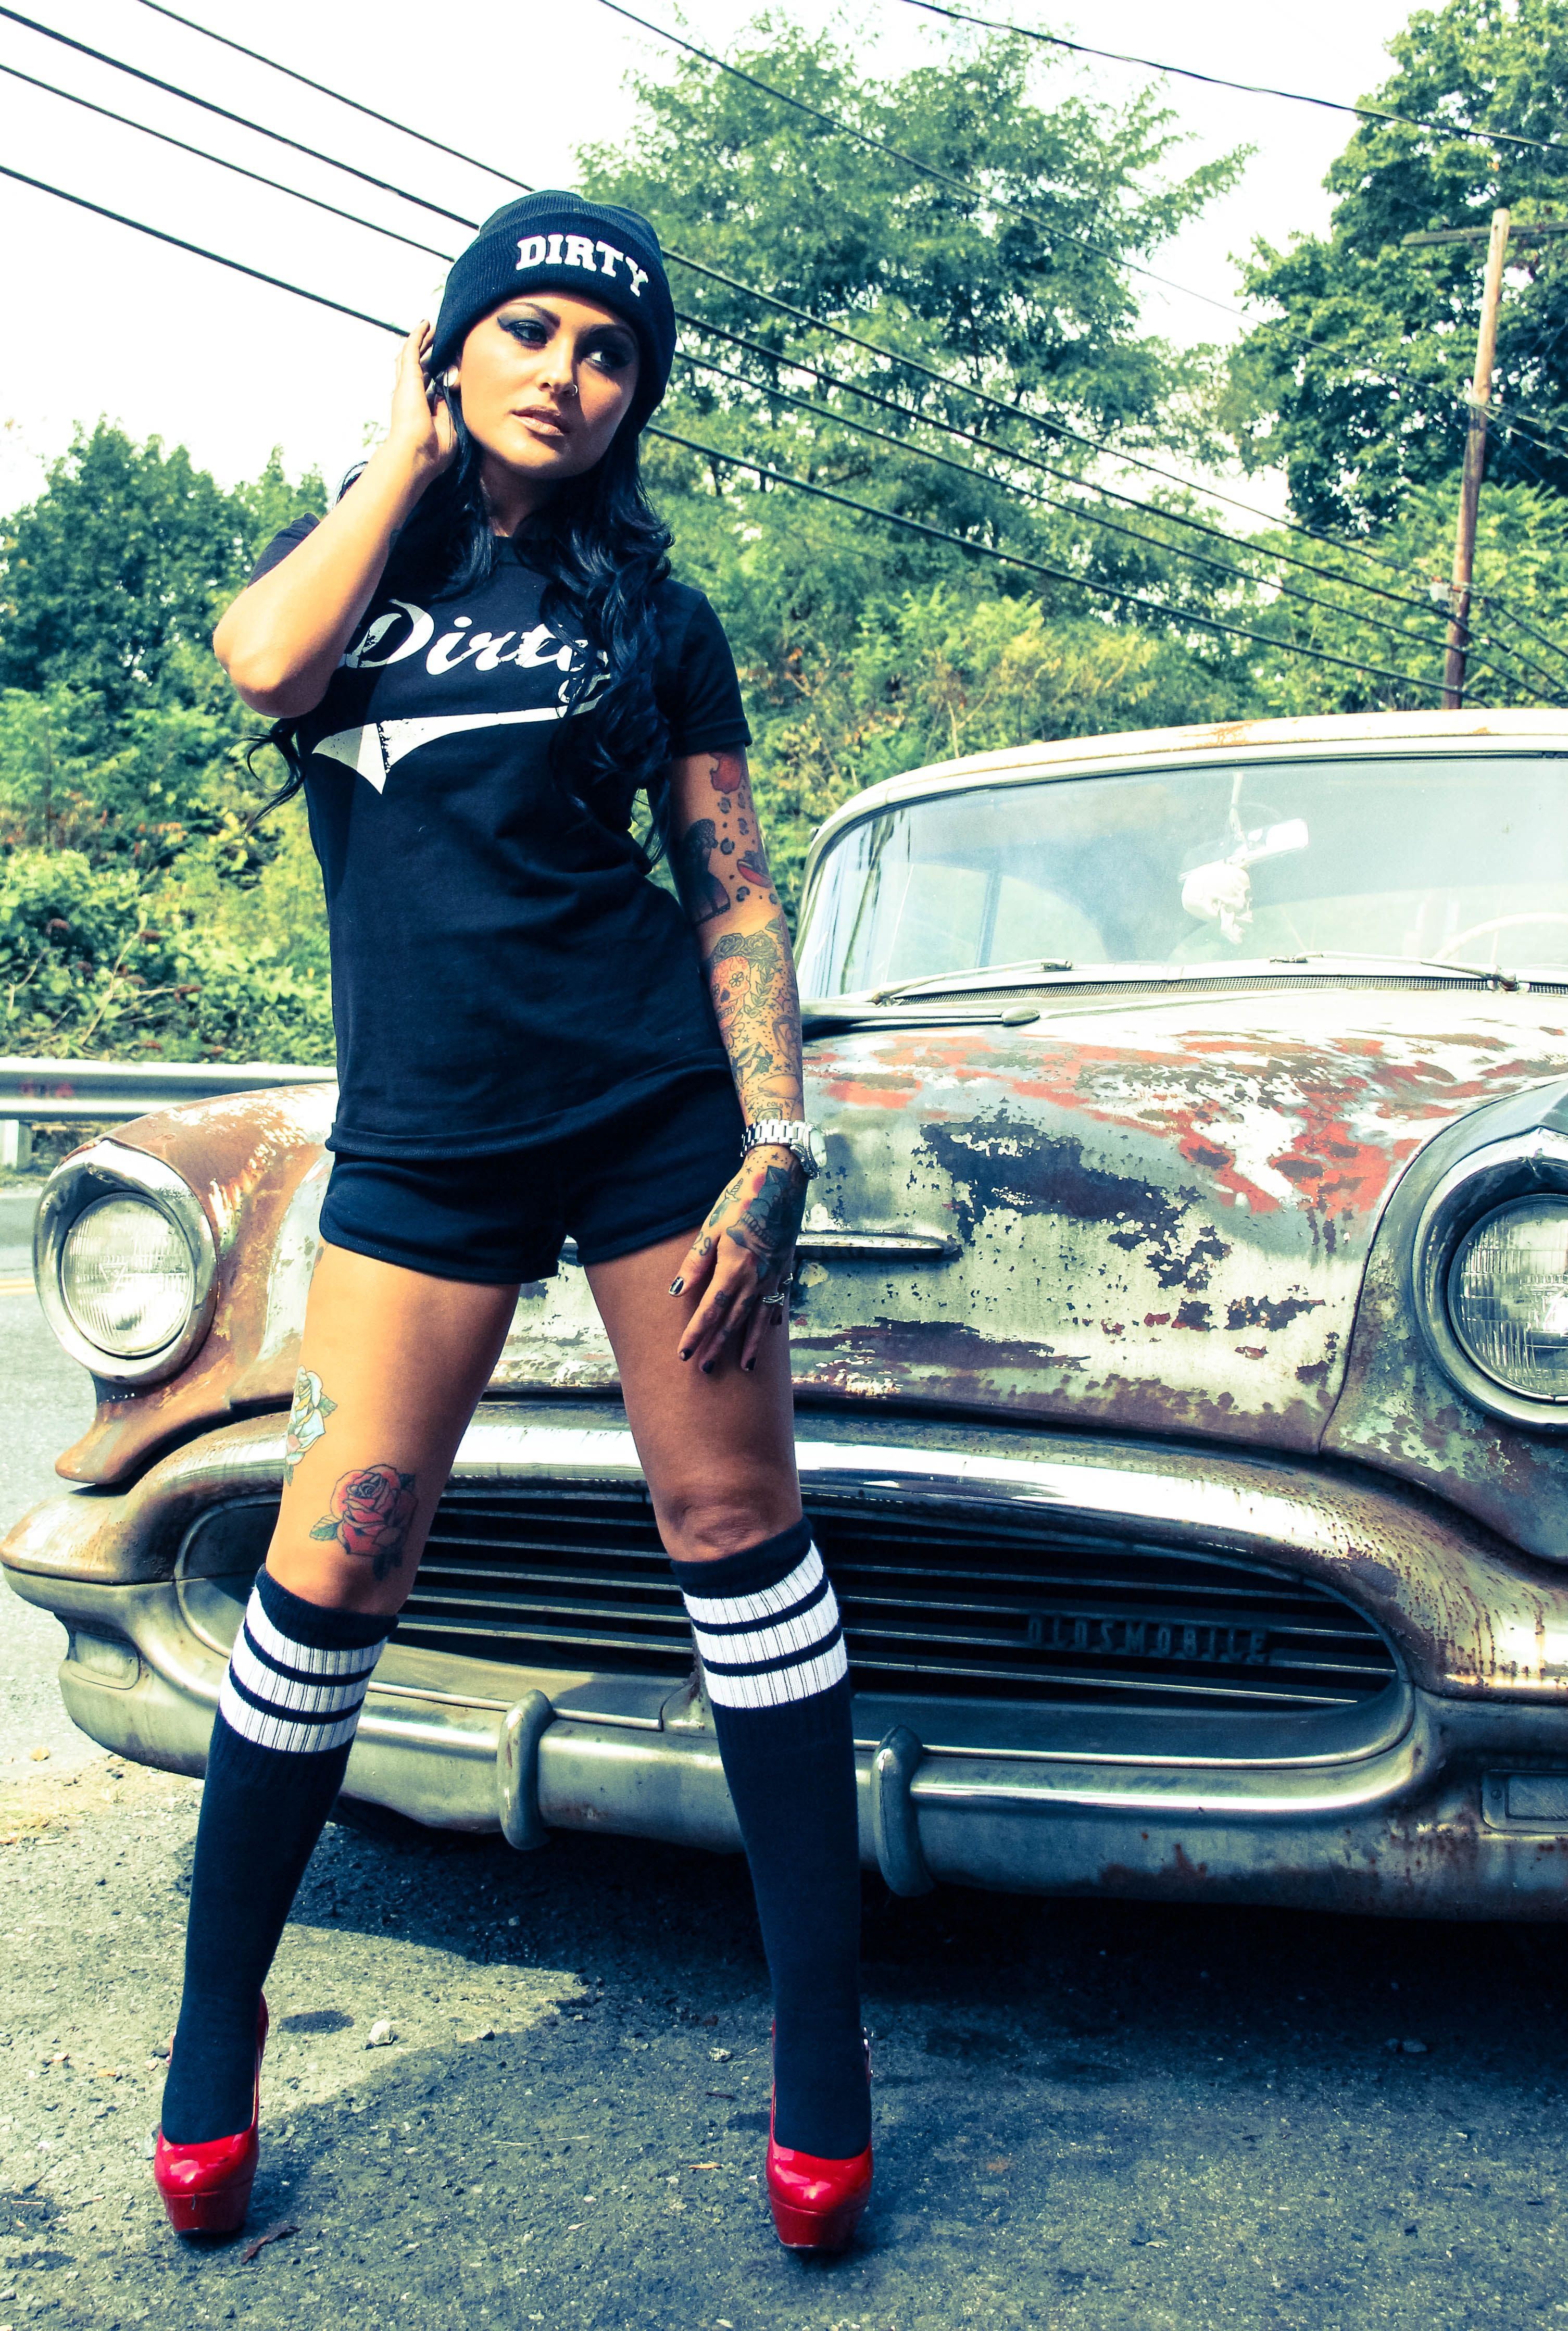 Dirty Combo comes with tee, shorts & socks. #dirtyshirty